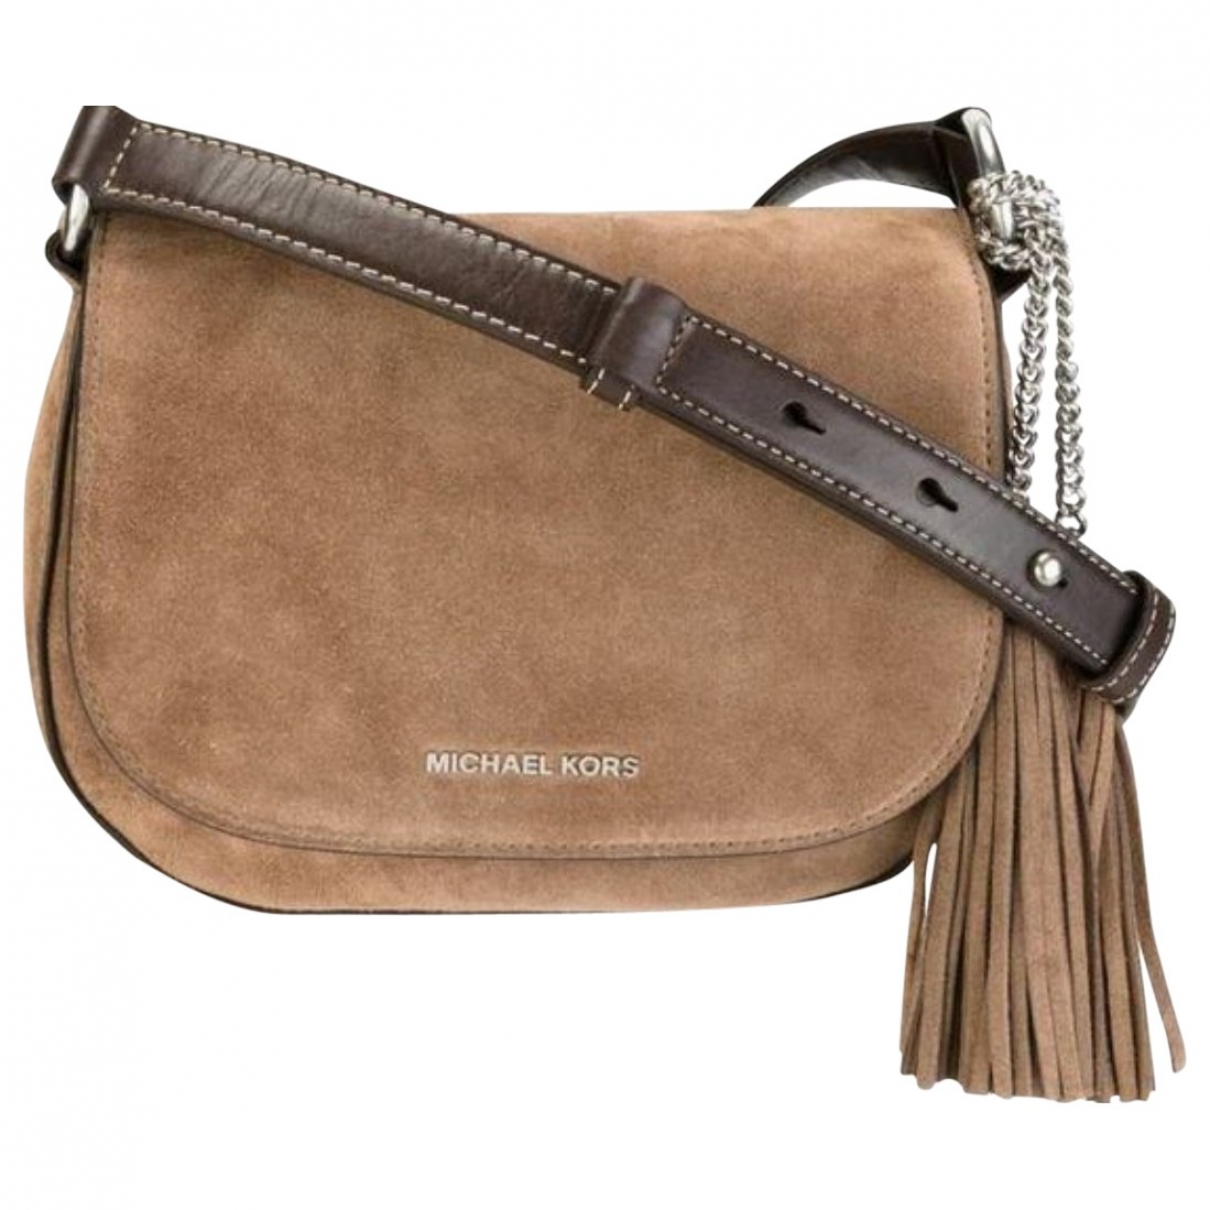 Michael Kors \N Brown Suede handbag for Women \N